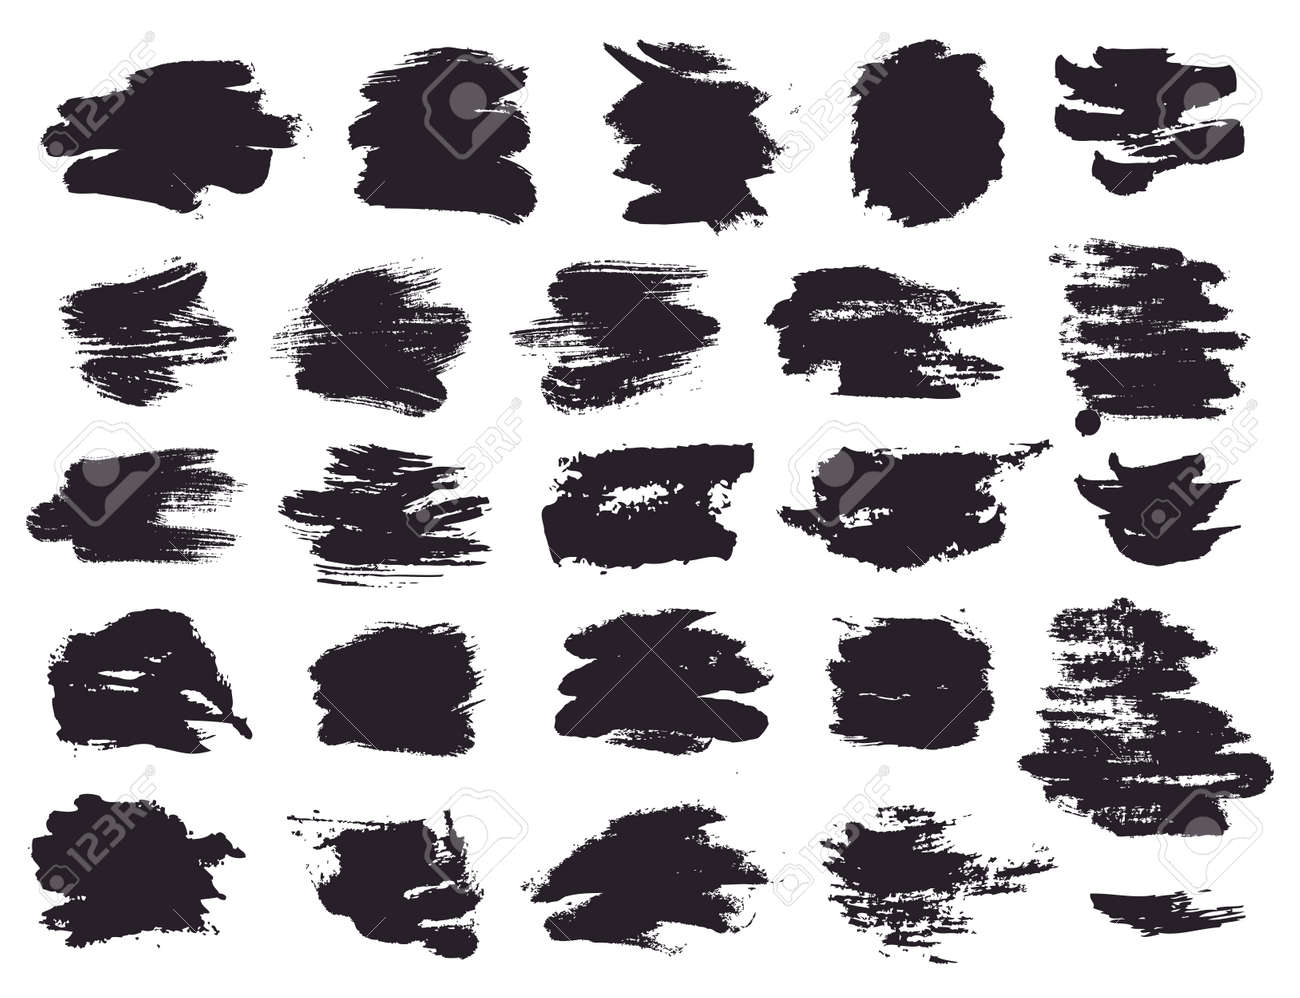 Paint brush strokes and abstract grunge stains isolated on white background. Black vector design elements for paintbrush texture, clipping mask, banner or text box. Freehand drawing collection. - 163460371